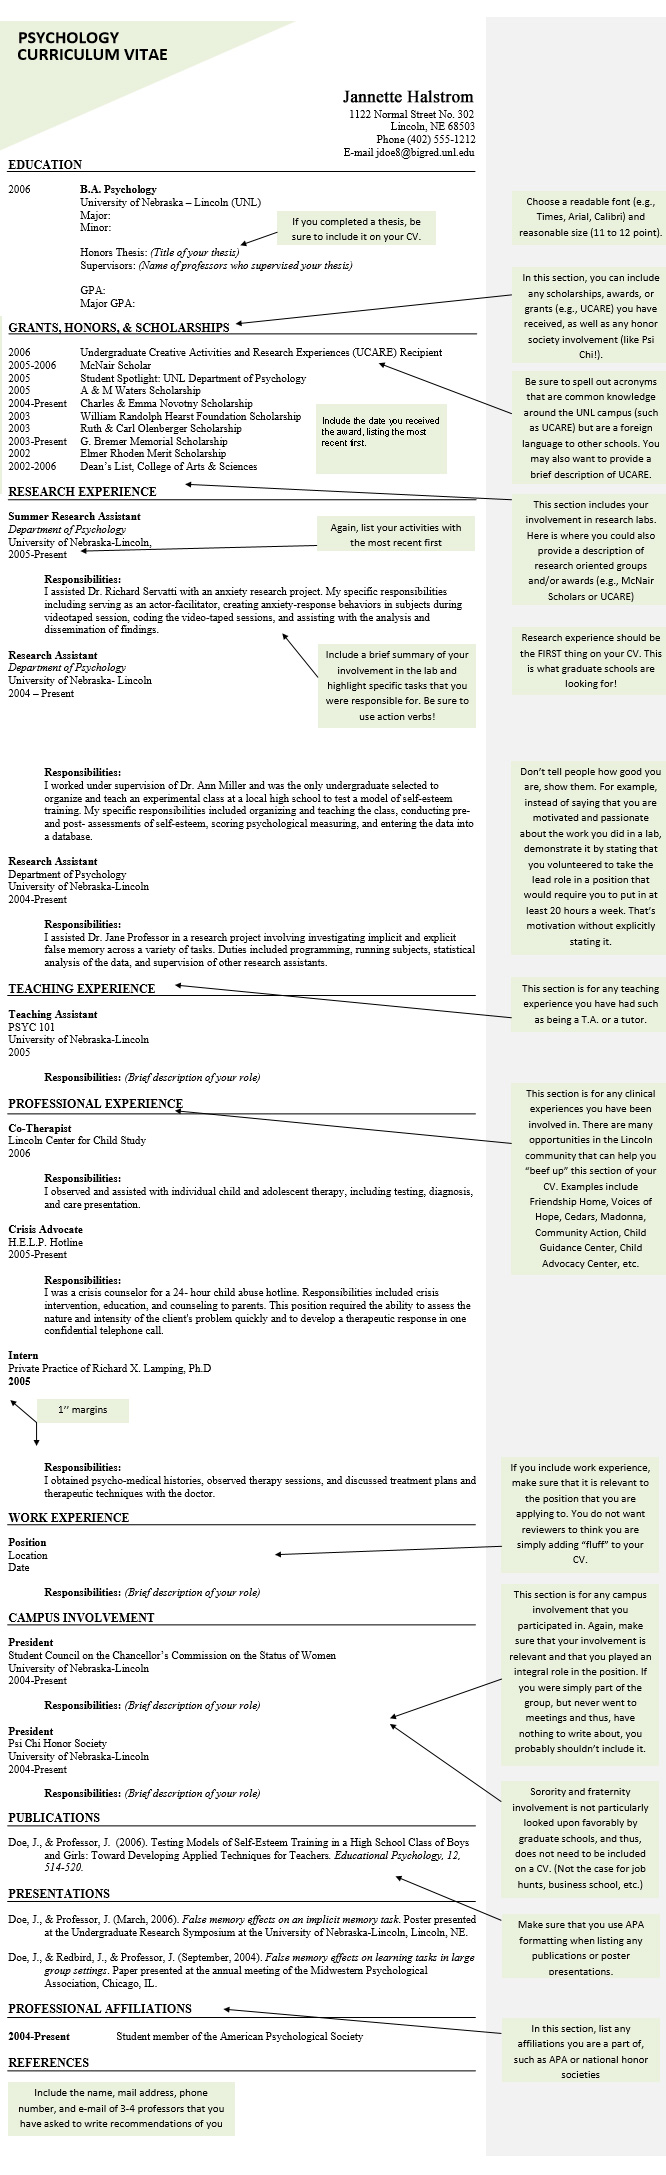 psychology cv and resume samples templates tips industrial objectives sample waitress Resume Industrial Psychology Resume Objectives